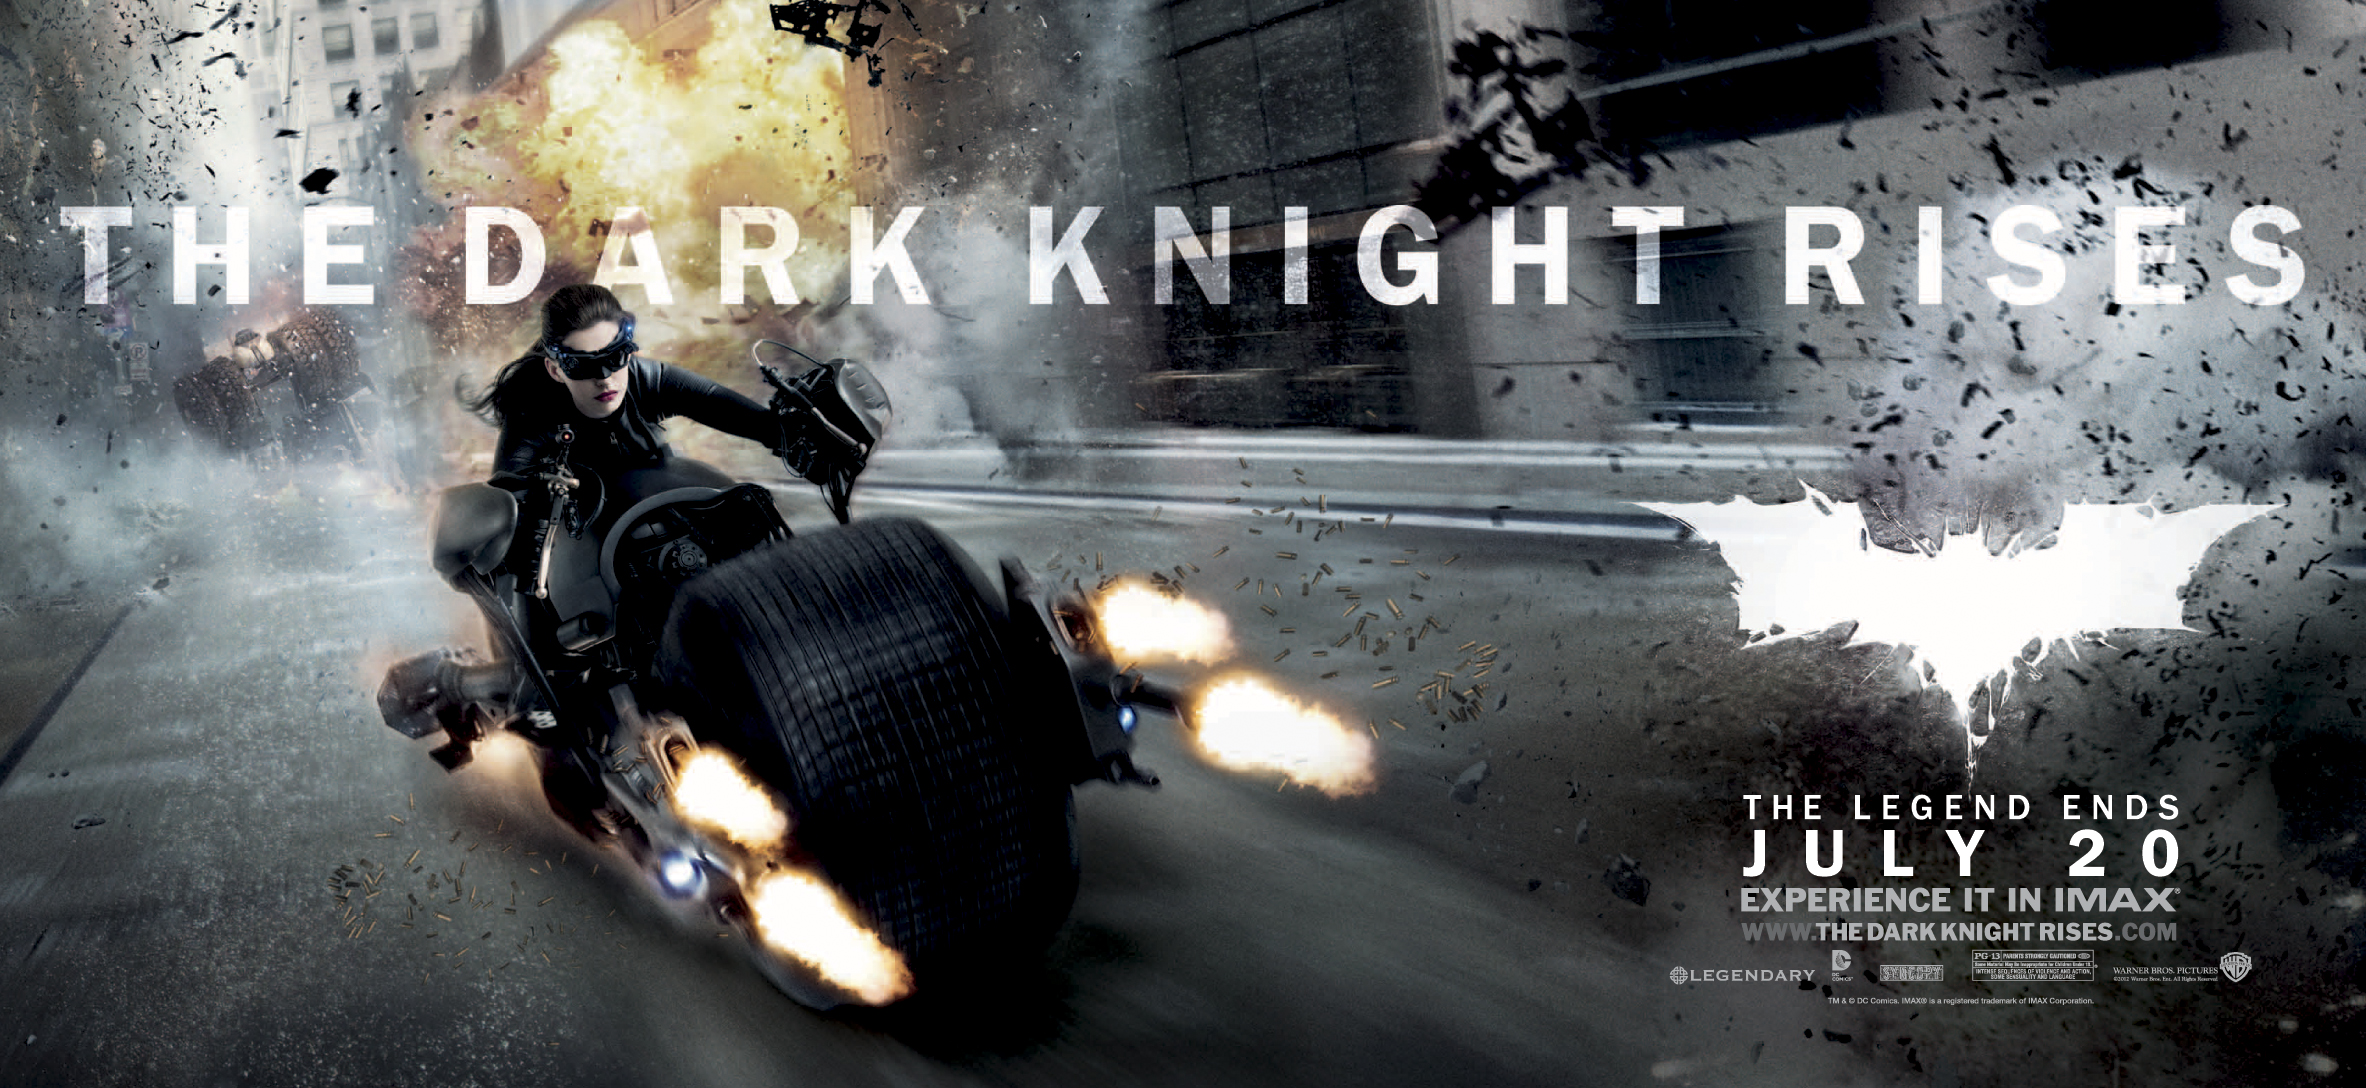 tyrath entertainment nolan will with bros christopher warner dark knight film the i addition from anne hathaway been pictures producing rises story david goyer produce also longtime wrote formidable enemies most batmans direct burbank partner screenplay jonathan charles company worldwide distributed older 2012 roven interpretation